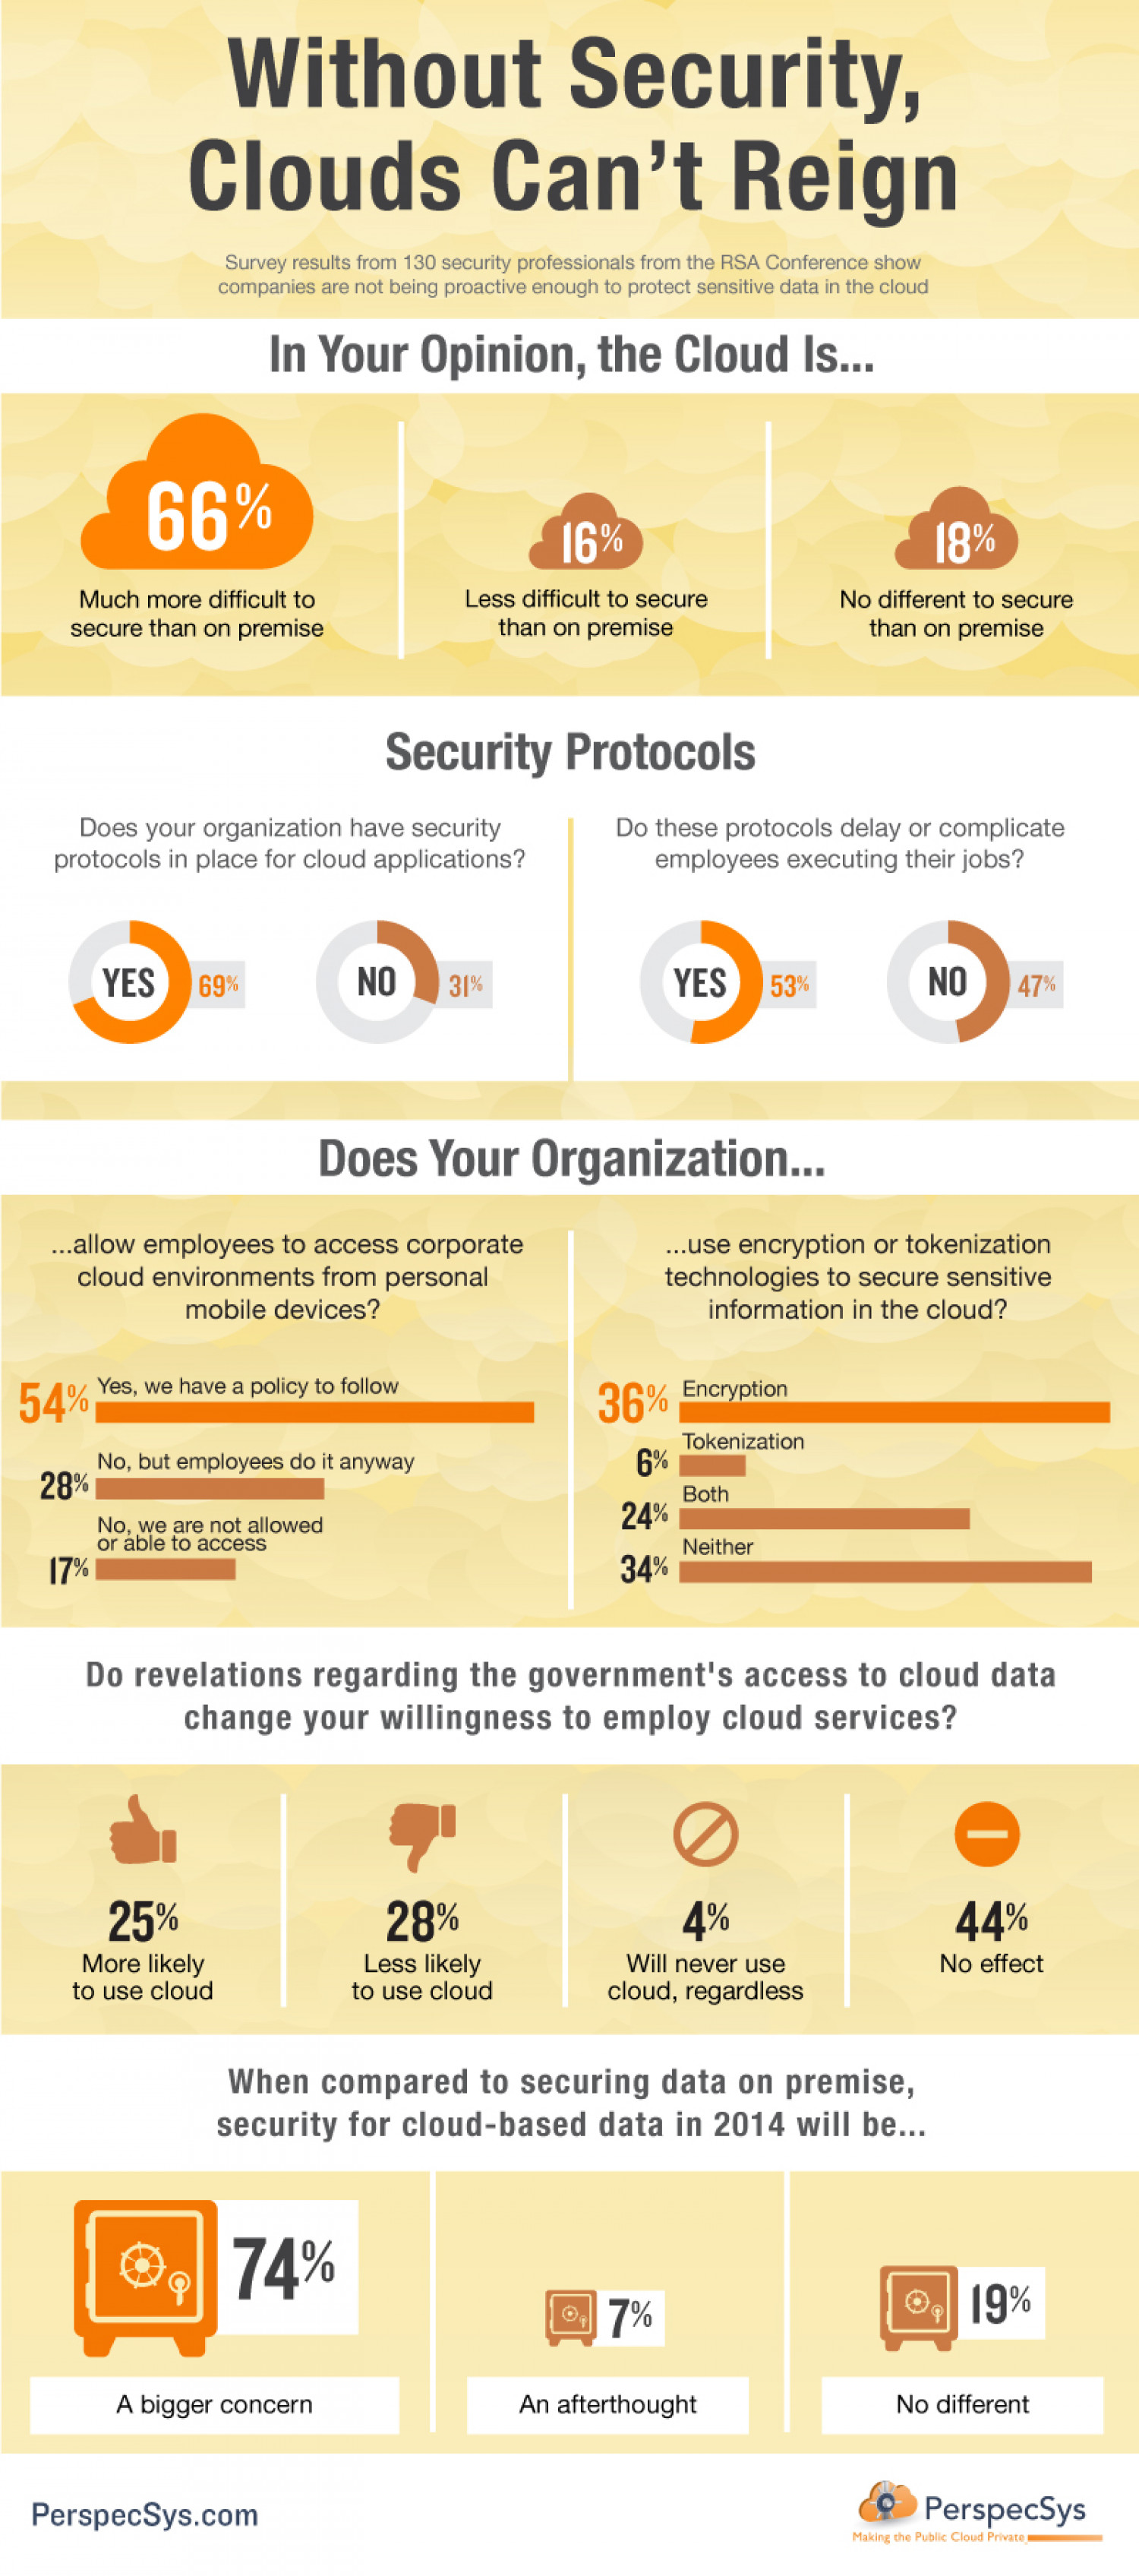 Without Security Clouds Can't Reign Infographic